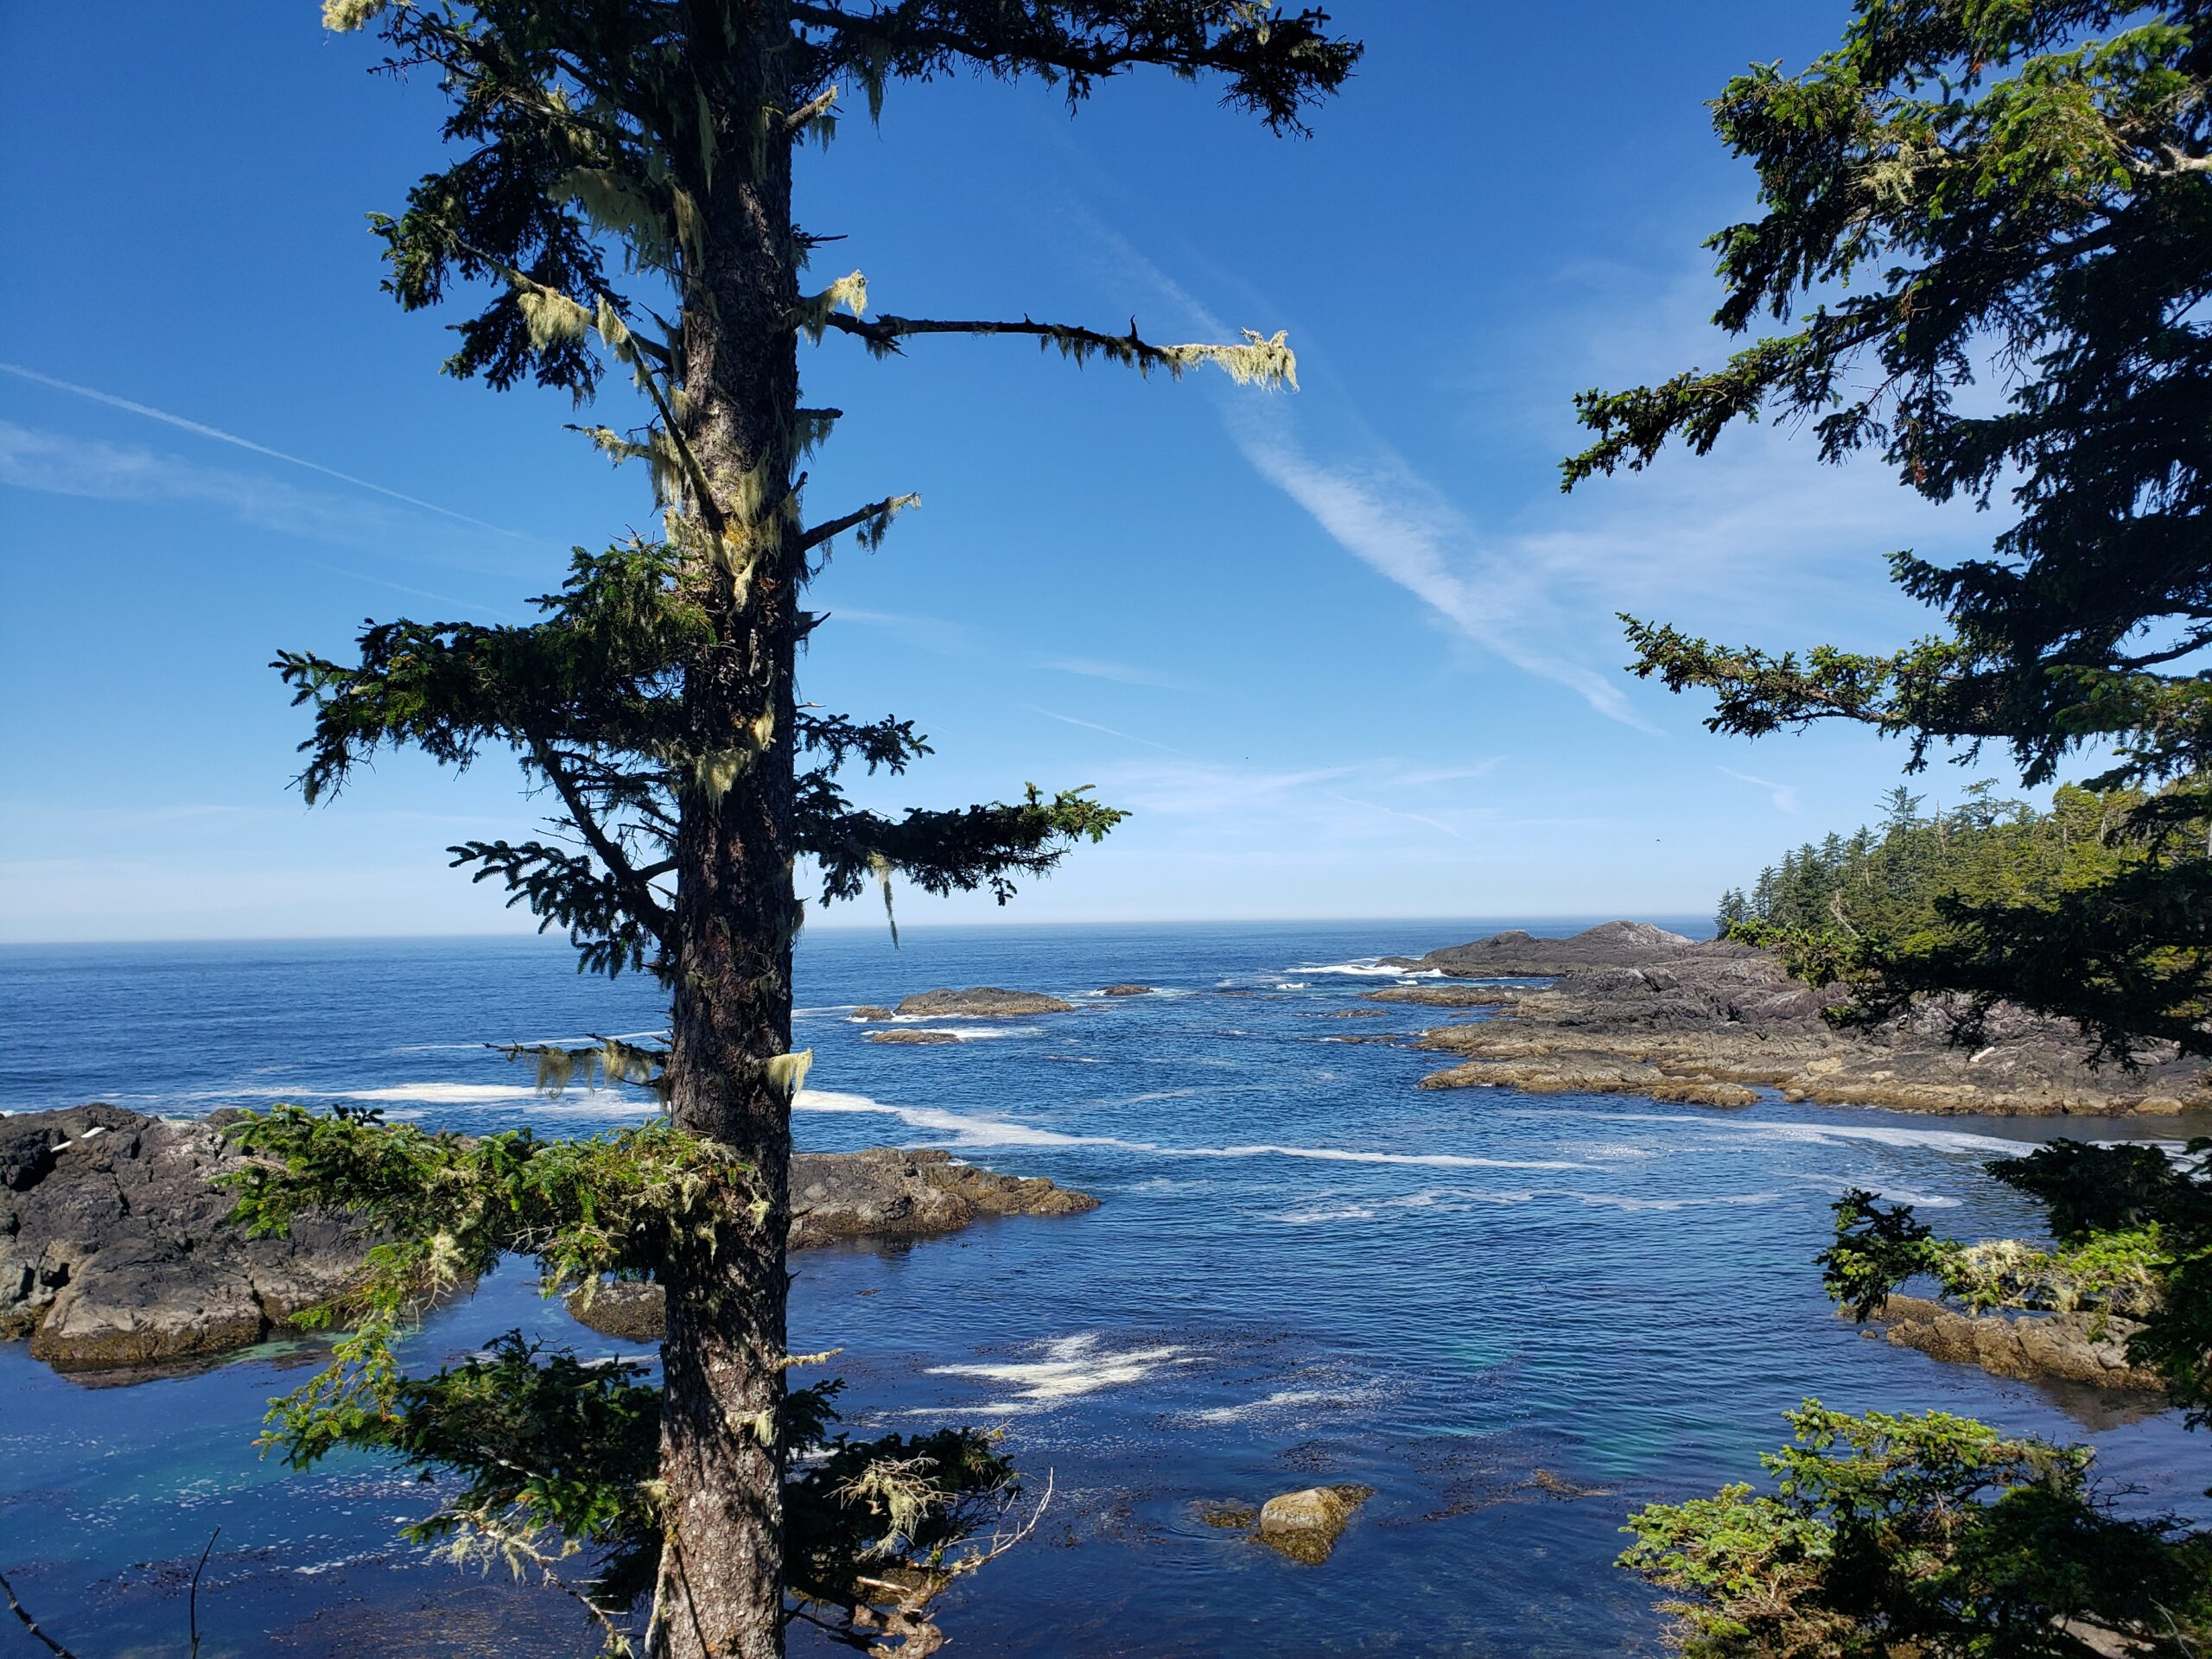 vancouver island road trip beach picture